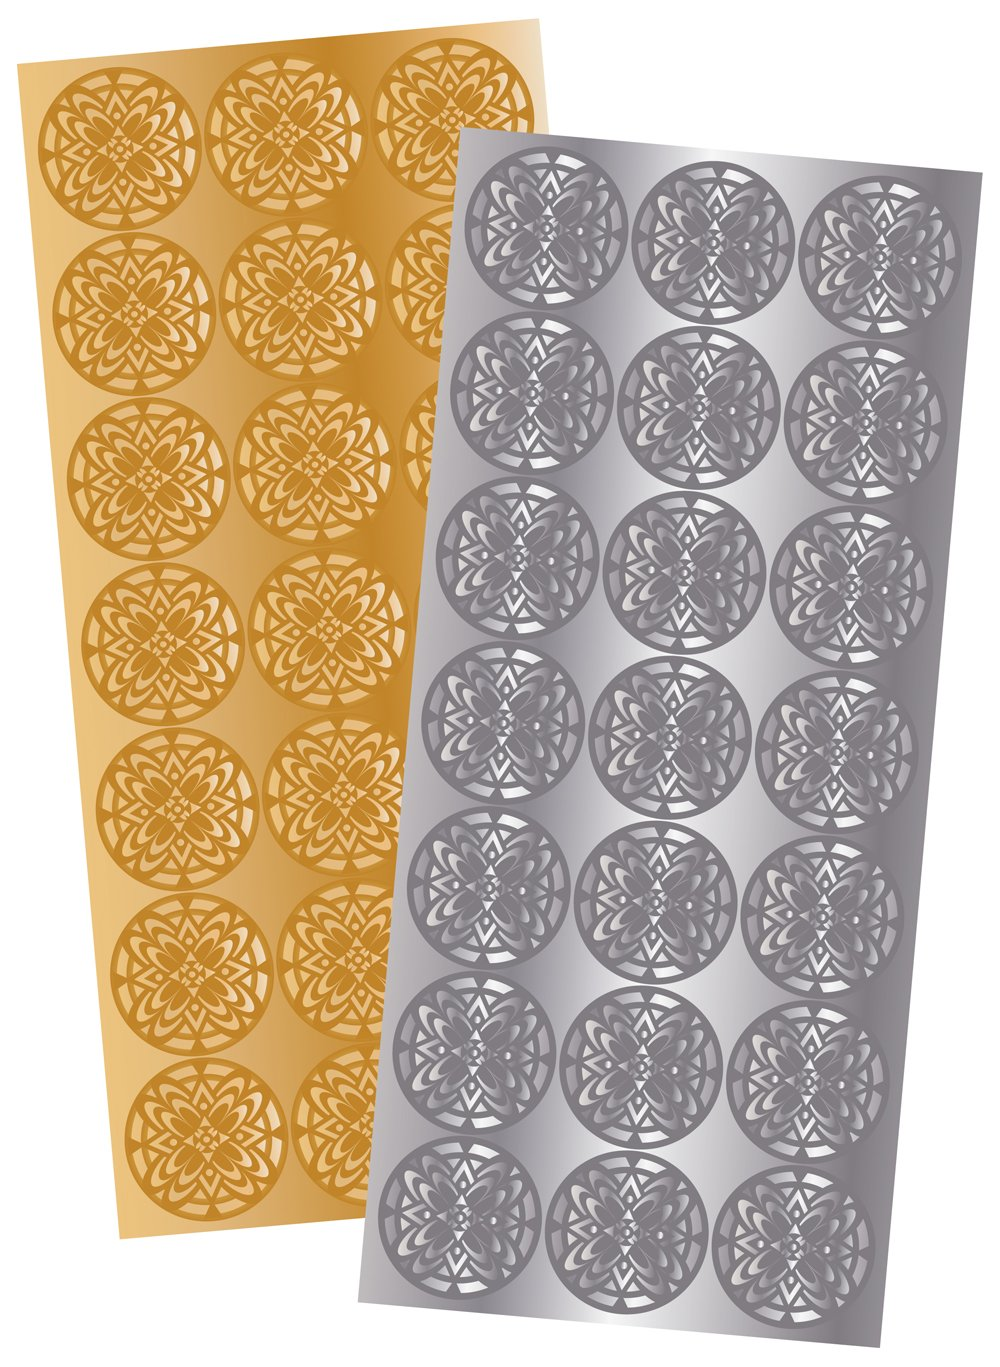 Quality Park Decorative Foil Envelope Seals, Pack of 21 Gold and Silver Seals (46910)